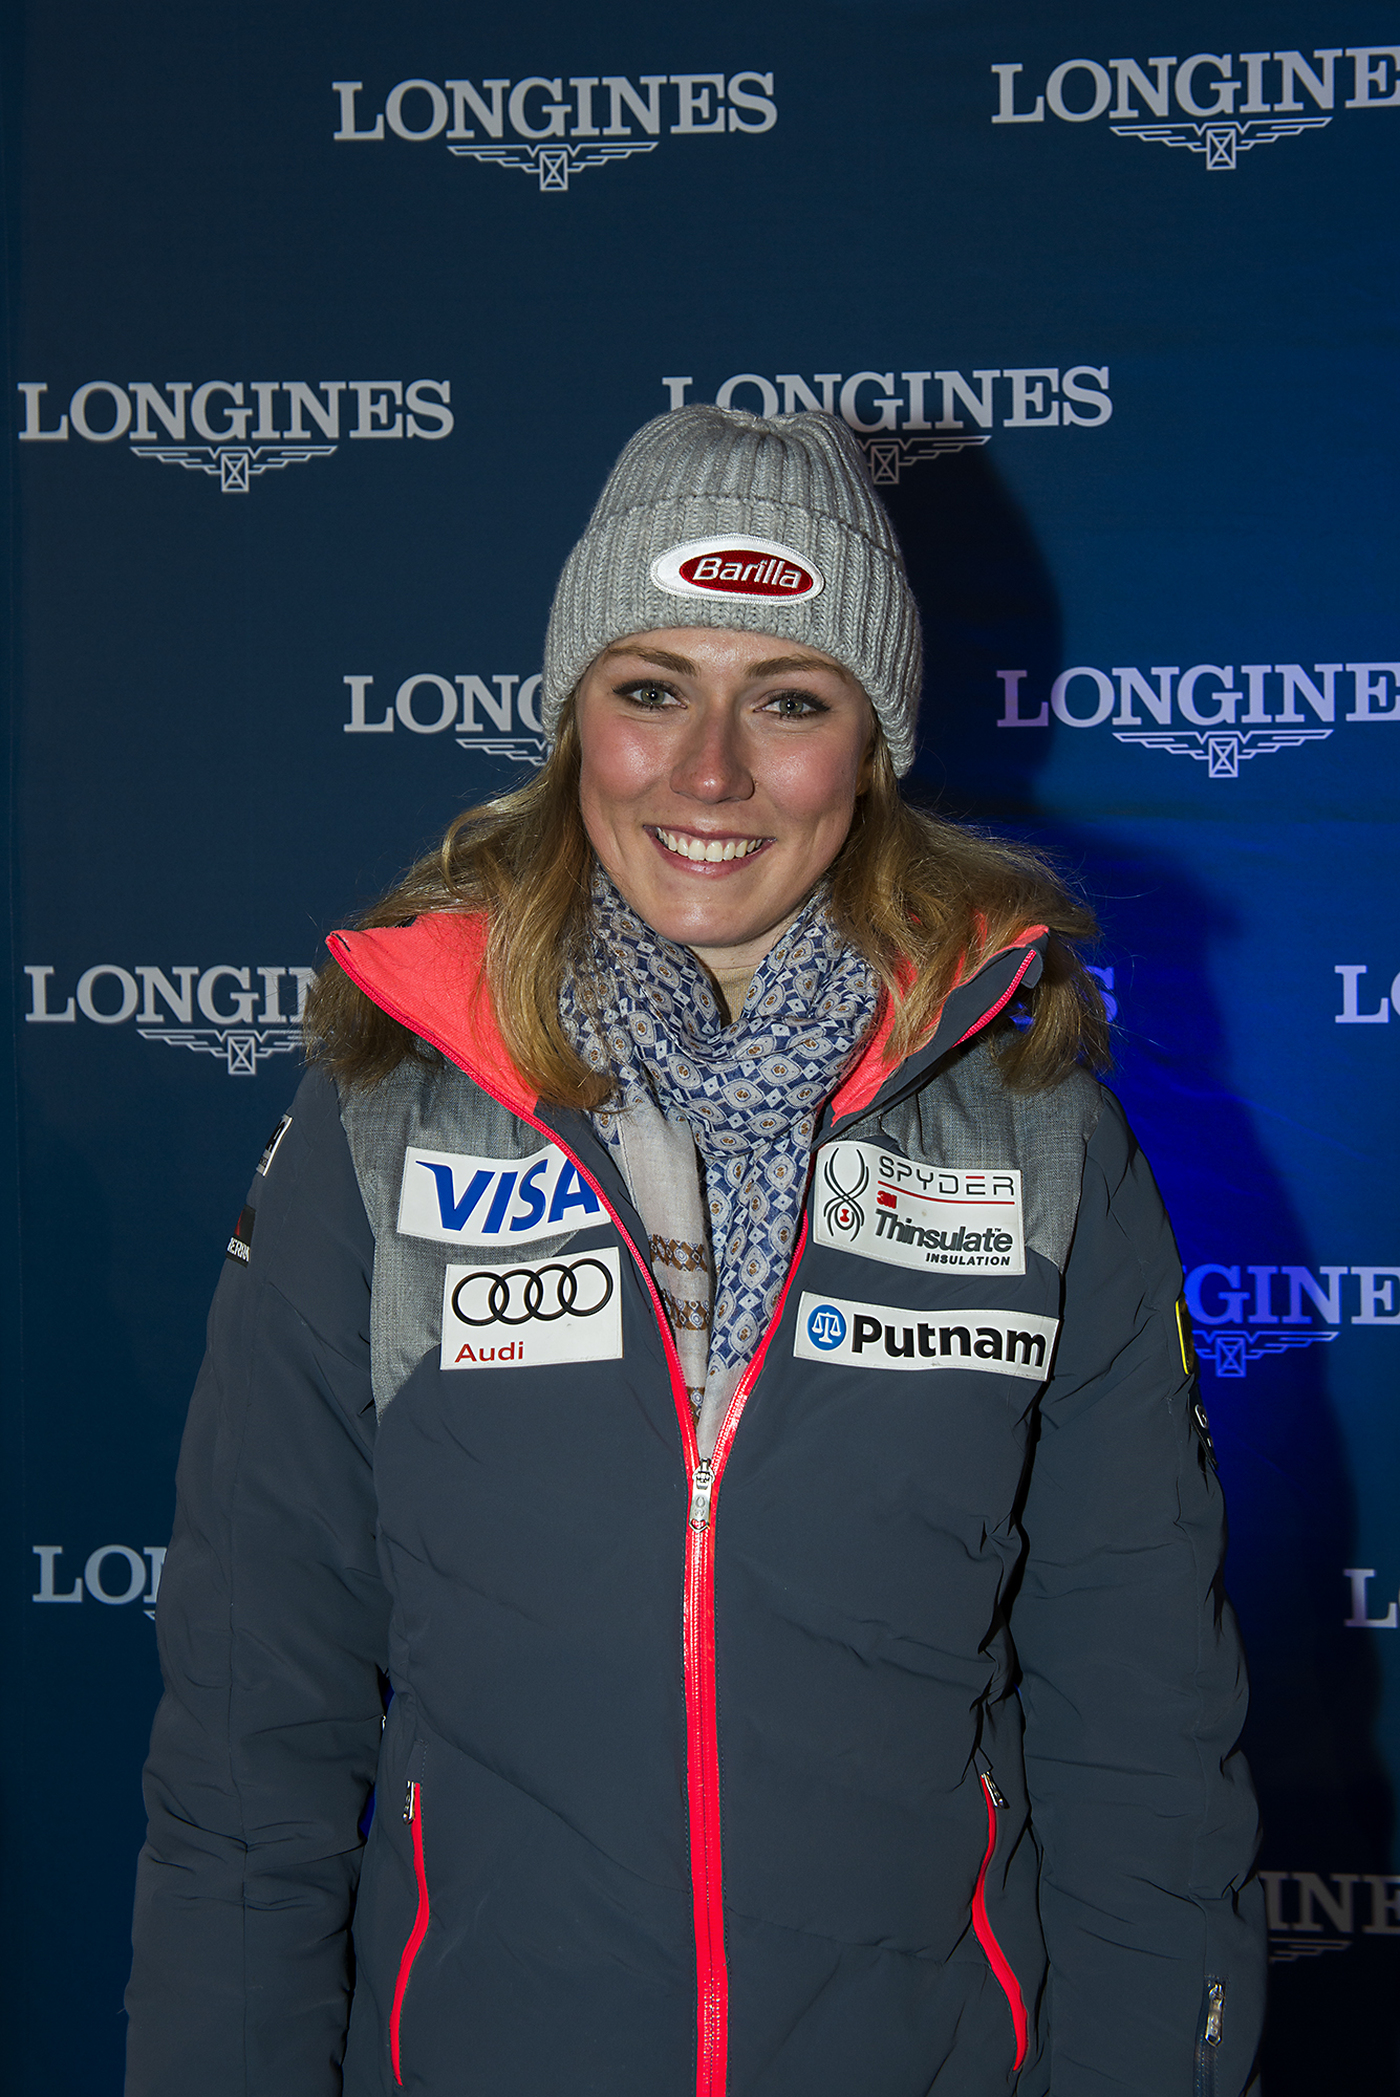 Longines Alpine Skiing Event: A new venue for the third edition of the Longines Future Ski Champions 5